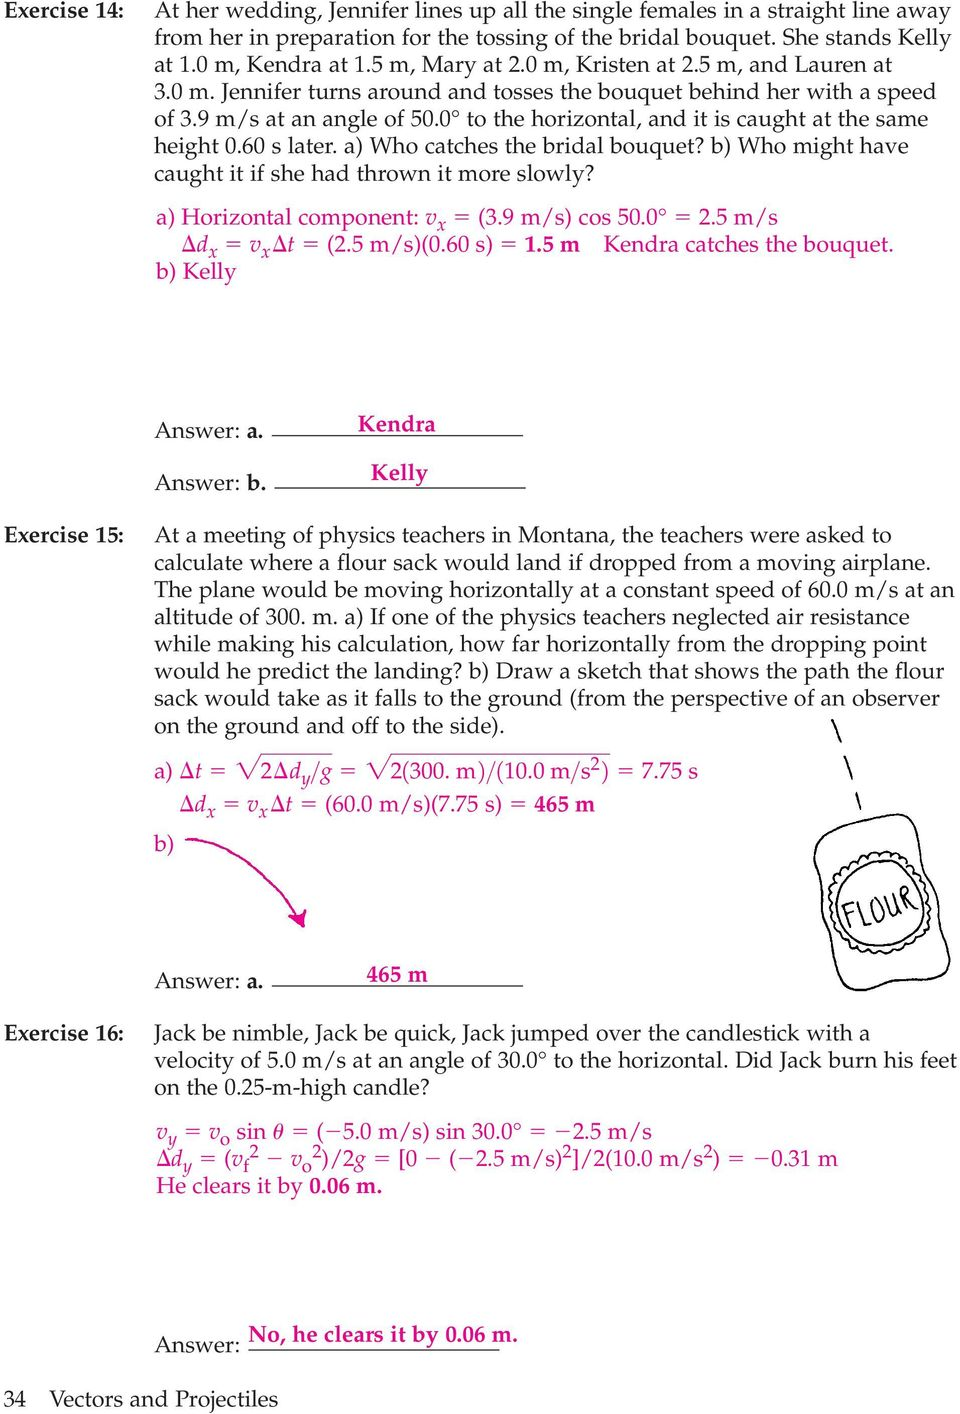 worksheet Vectors And Projectiles Worksheet 3 2 projectile motion pdf 0 to the horizontal and it is caught at same height 60 s later